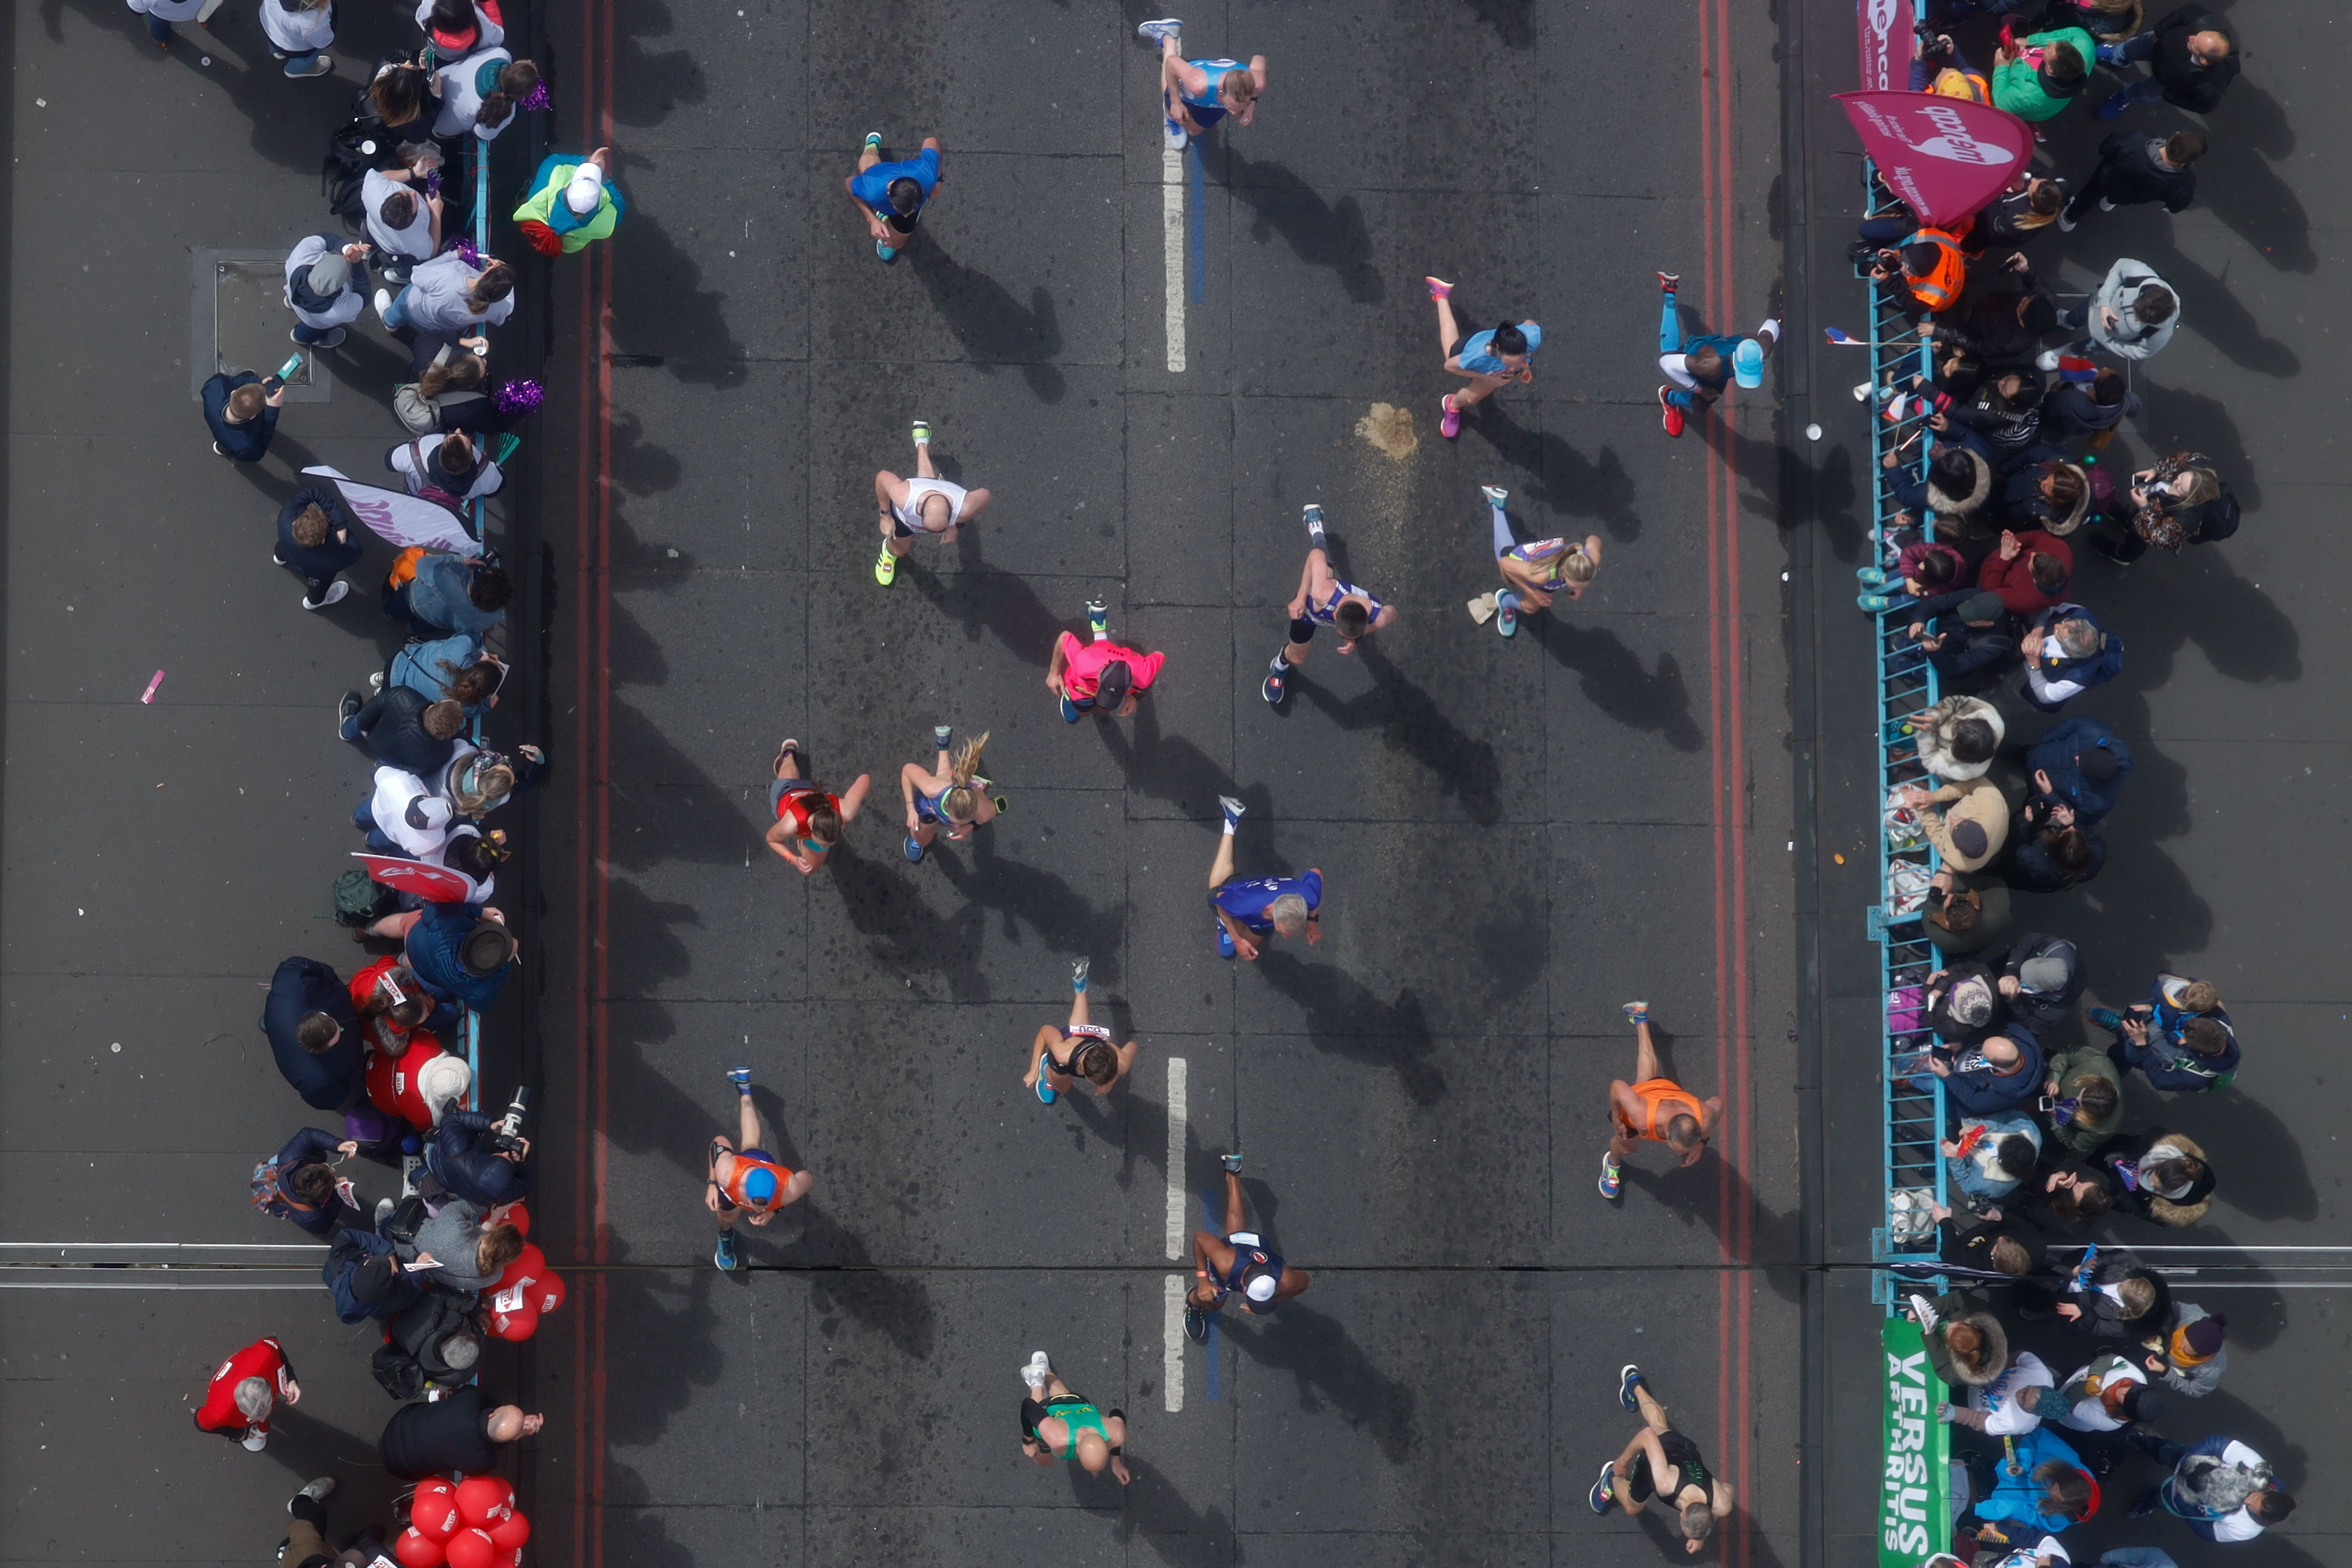 TOPSHOT - Competitors run across Tower Bridge as they compete in the 2019 London Marathon in central London on April 28, 2019. (TOLGA AKMEN/AFP/Getty Images)